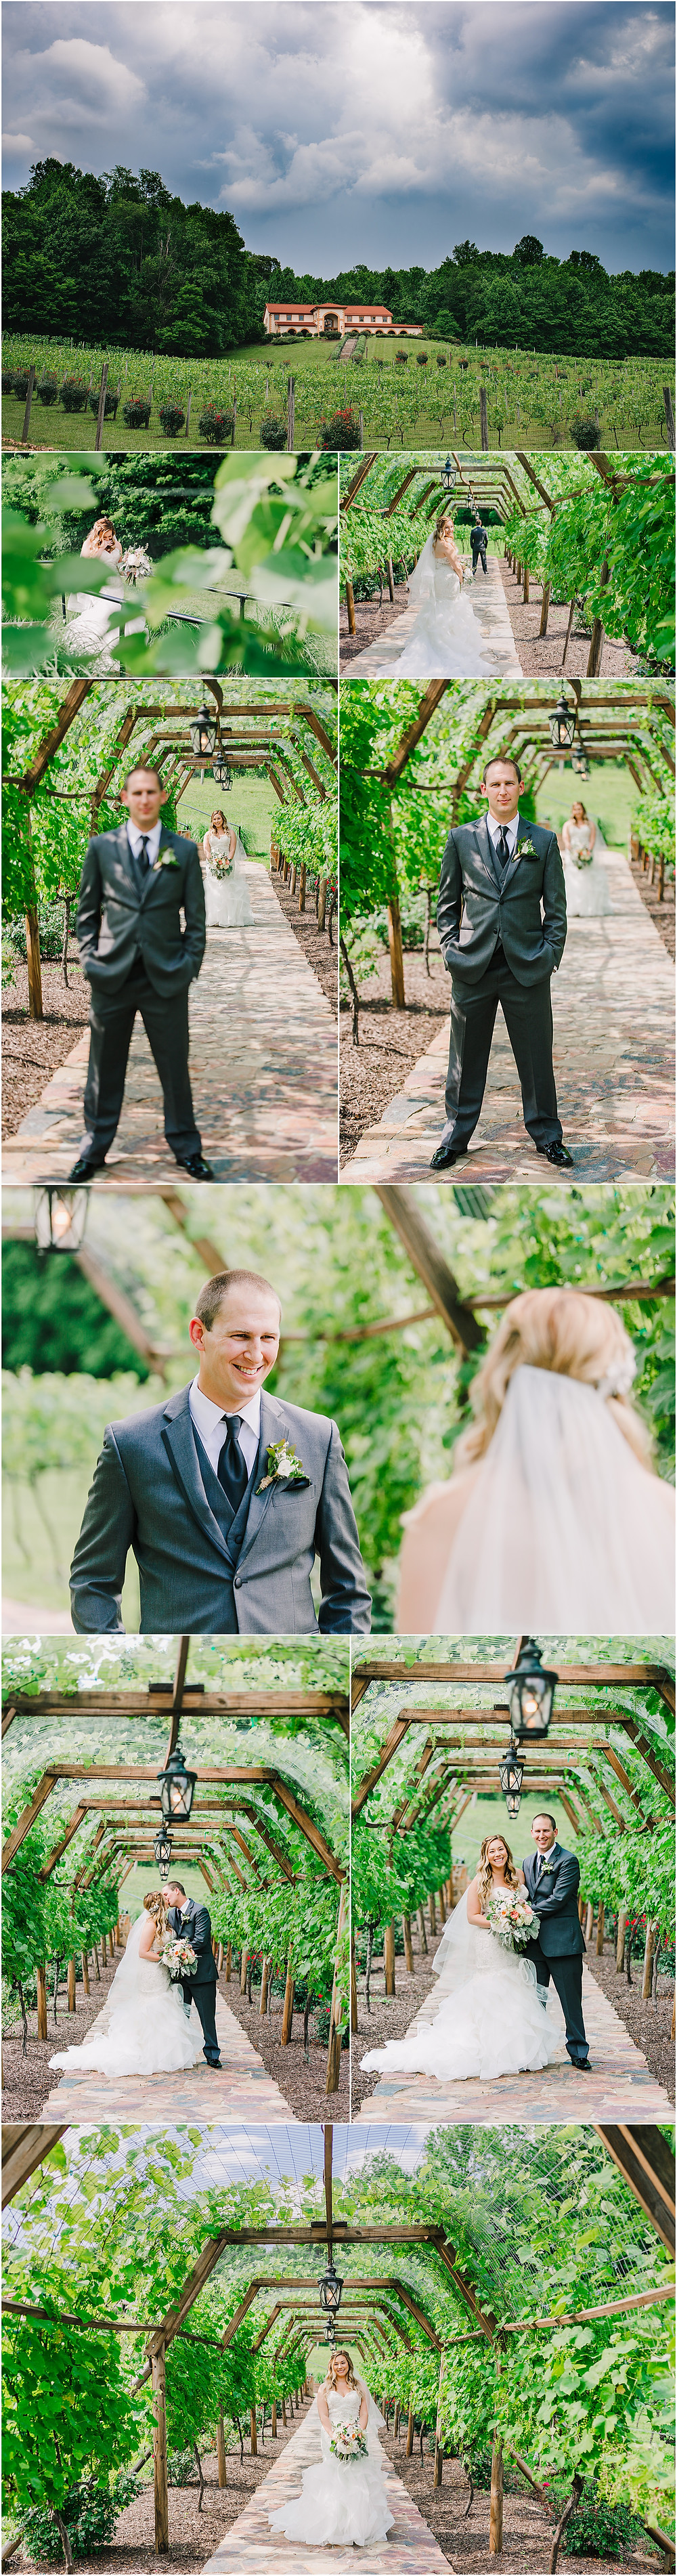 First Look at Running Hare Vineyard - Annapolis Wedding Photographer